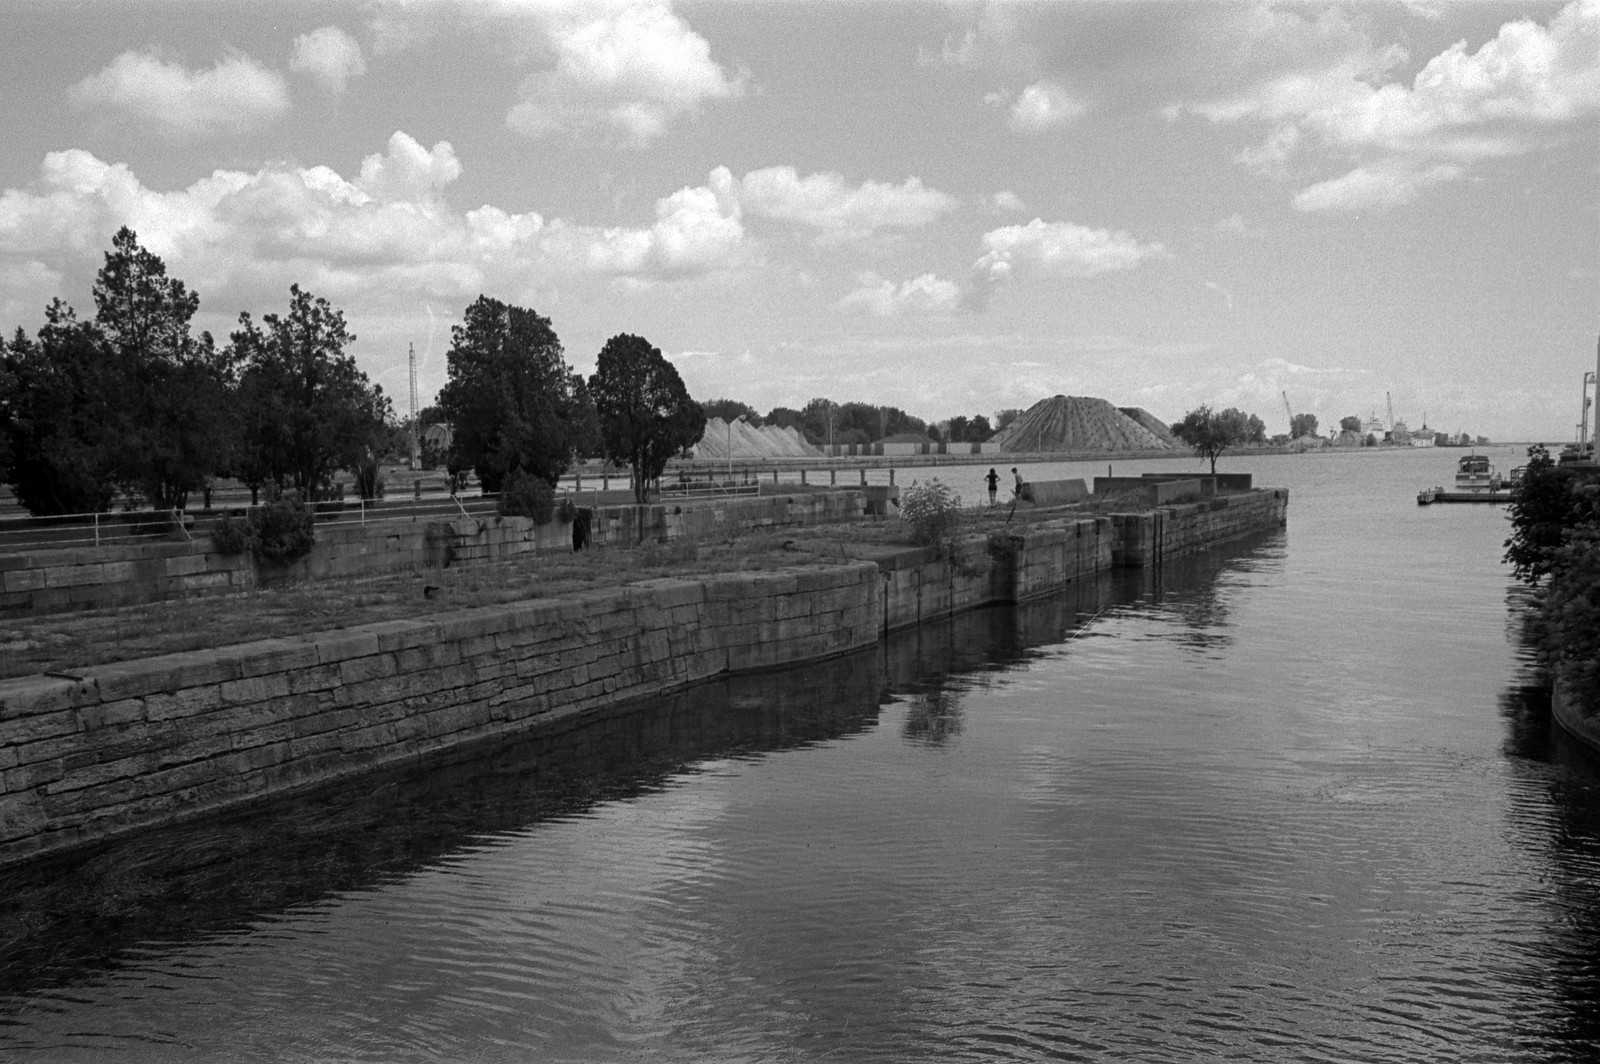 The 3rd Canal - Exit